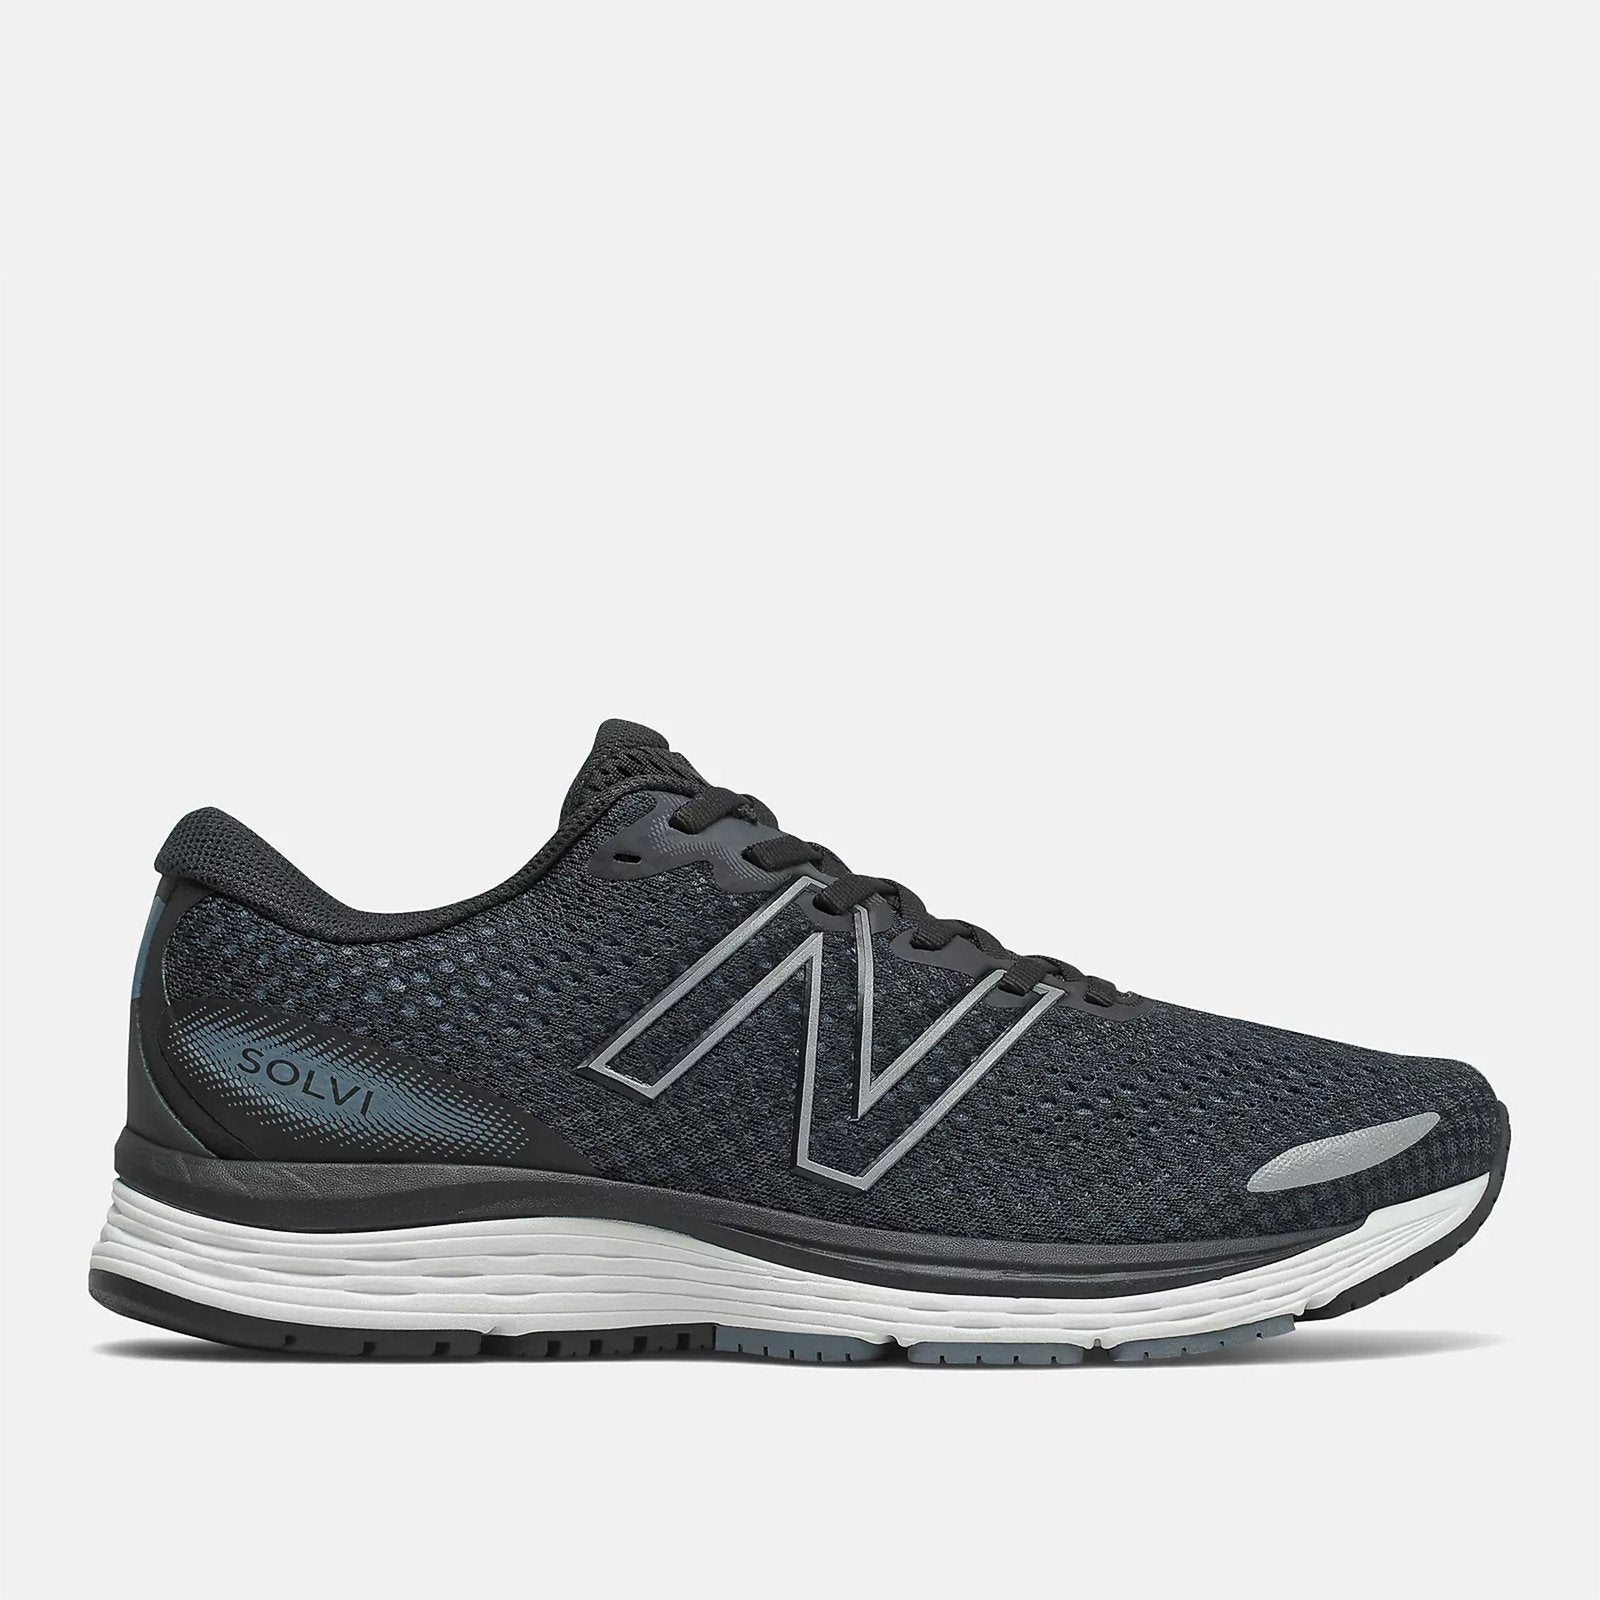 New Balance Men's Solvi v3 Running Shoe - Black SP-Footwear-Mens New Balance